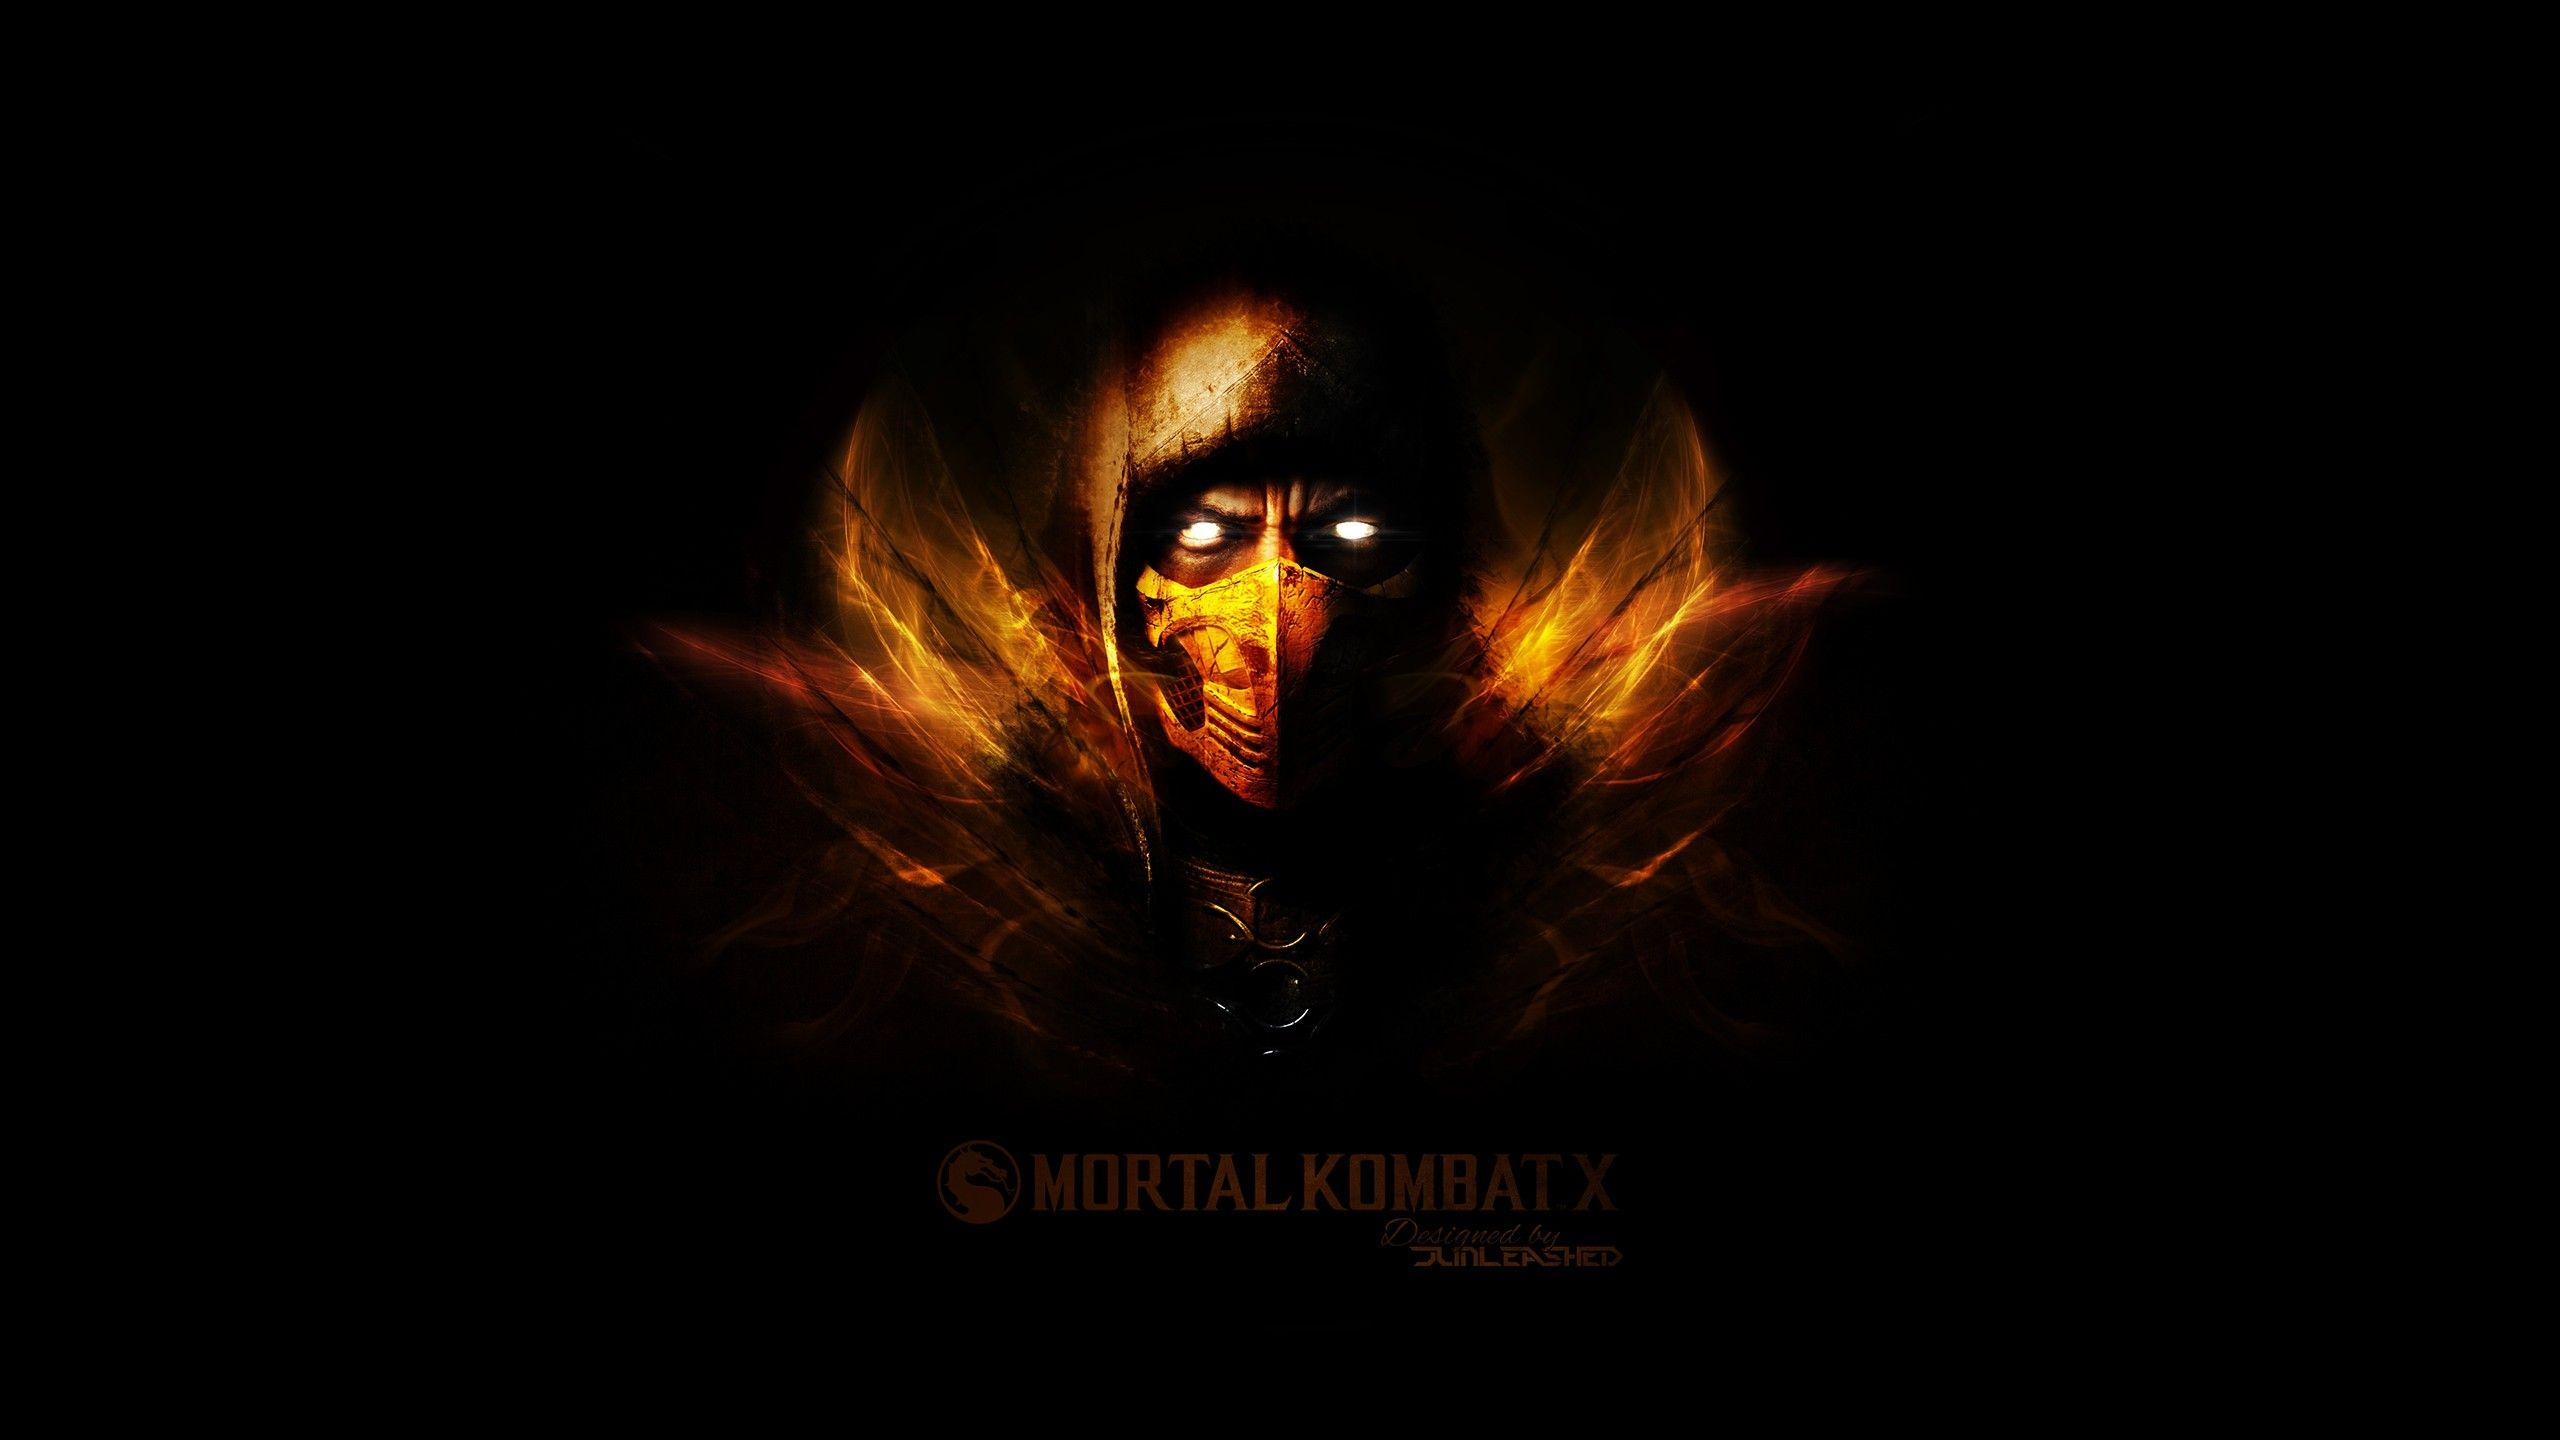 video Games, Mortal Kombat X, Mortal Kombat, Simple Backgrounds